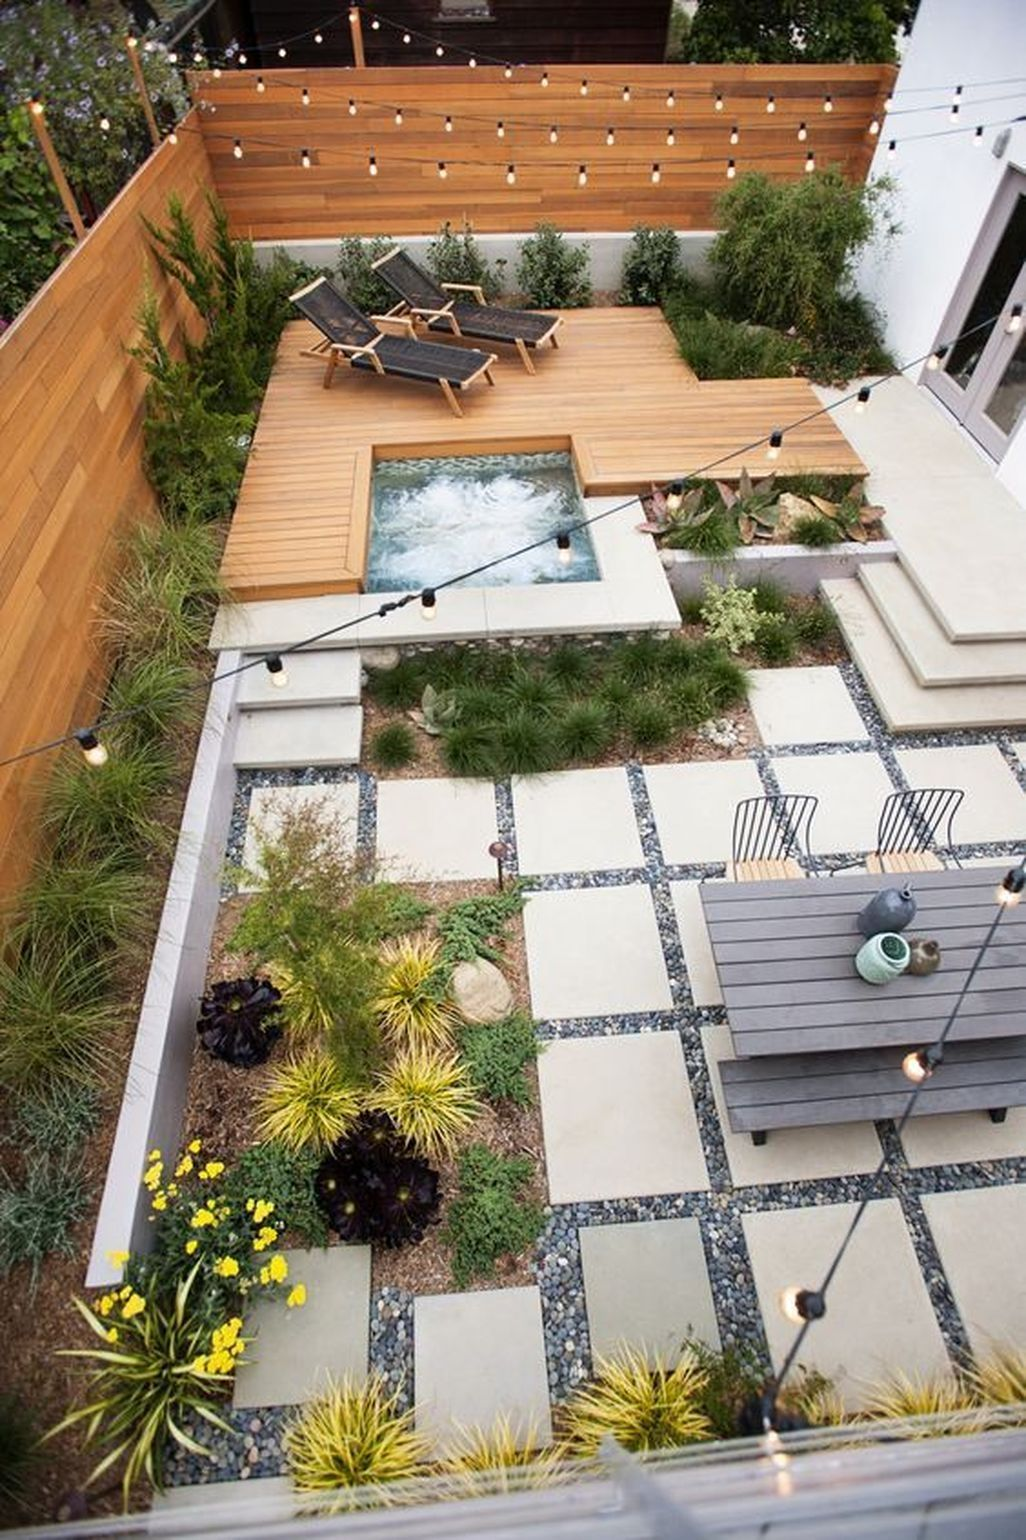 Nice 44 Awesome Small Backyard Patio Design Ideas Https://homedecorish.com/